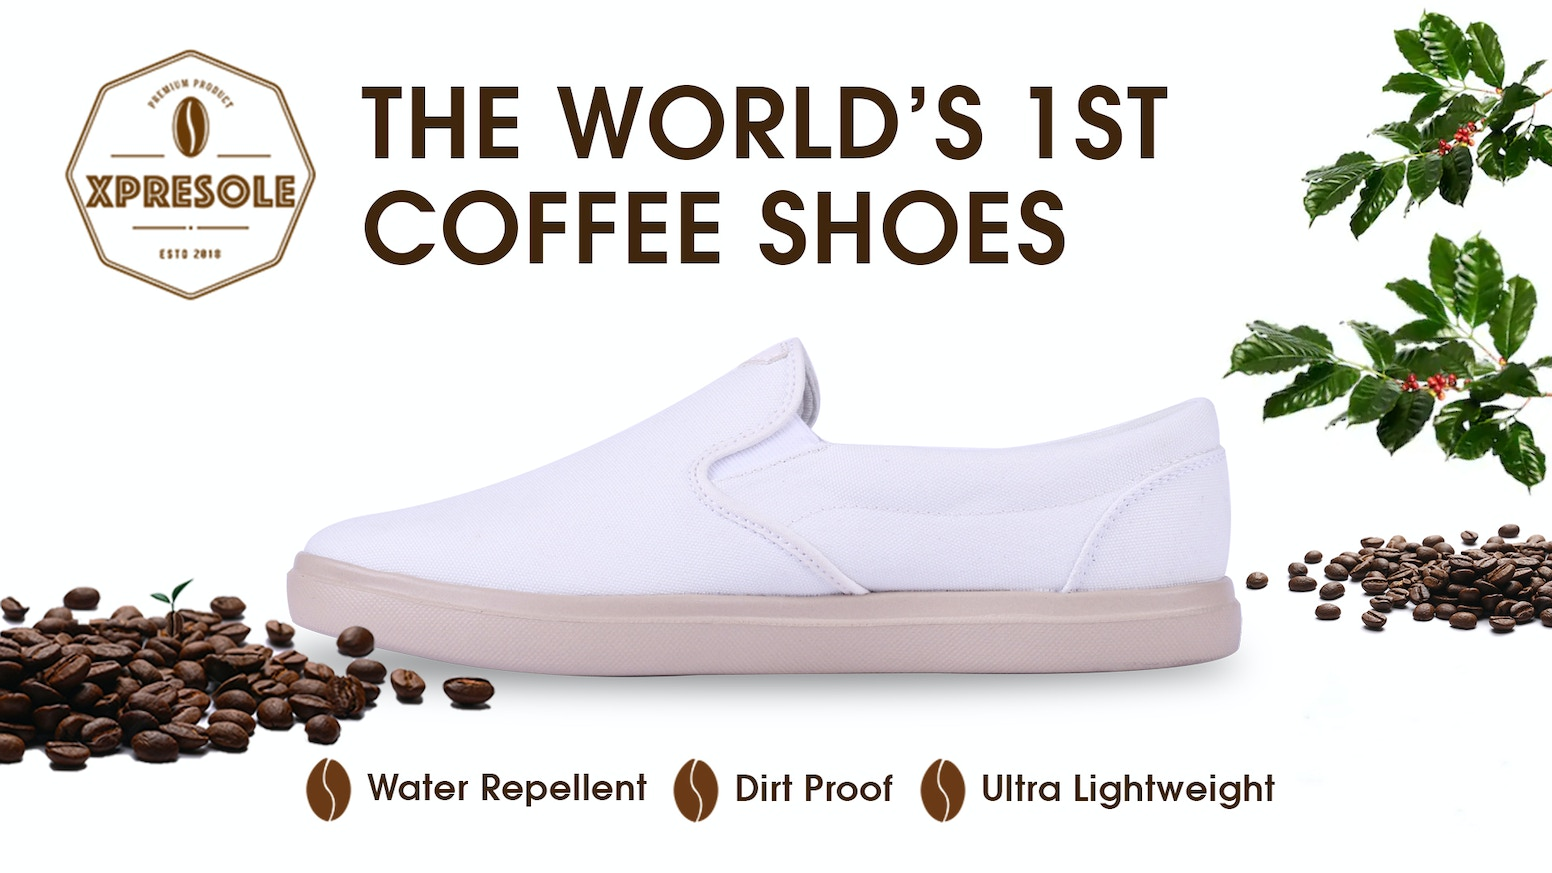 Unisex shoes for everyday use. Aromatic, Vegan, Lightweight, Dirtproof, Water Repellent, Odor Control & UV protection.